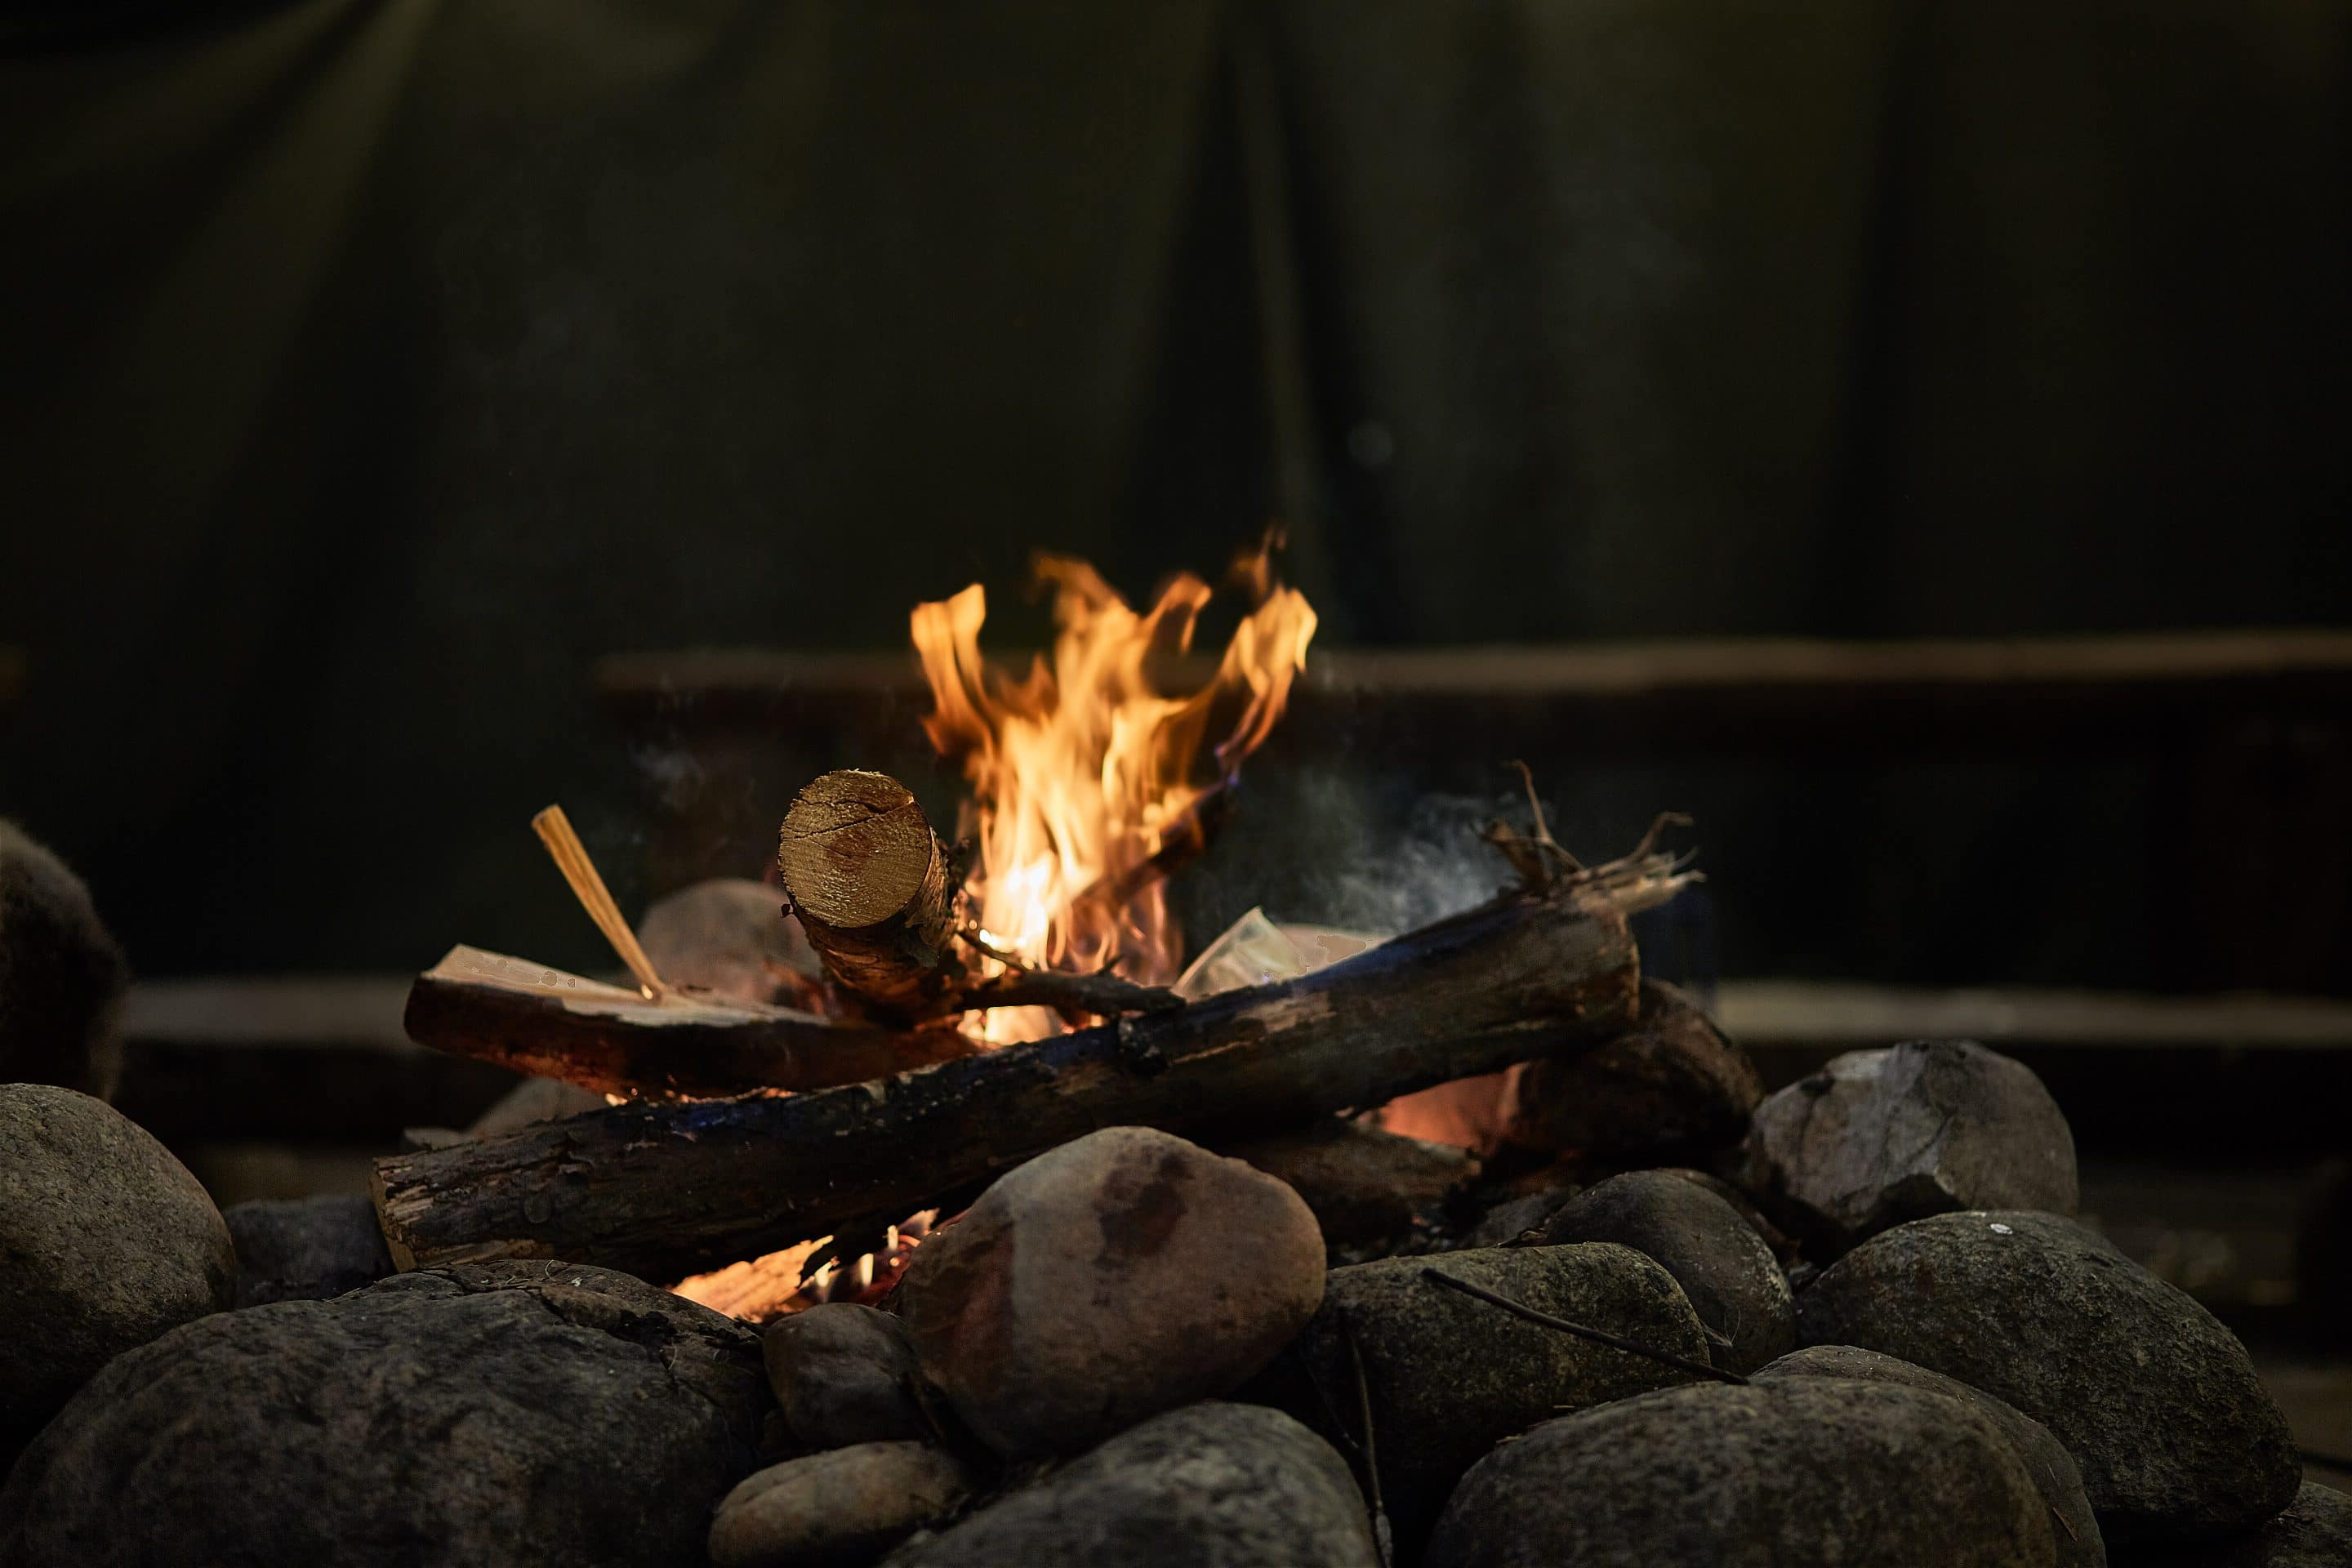 Burning wood campertunity how to build a fire with wet wood